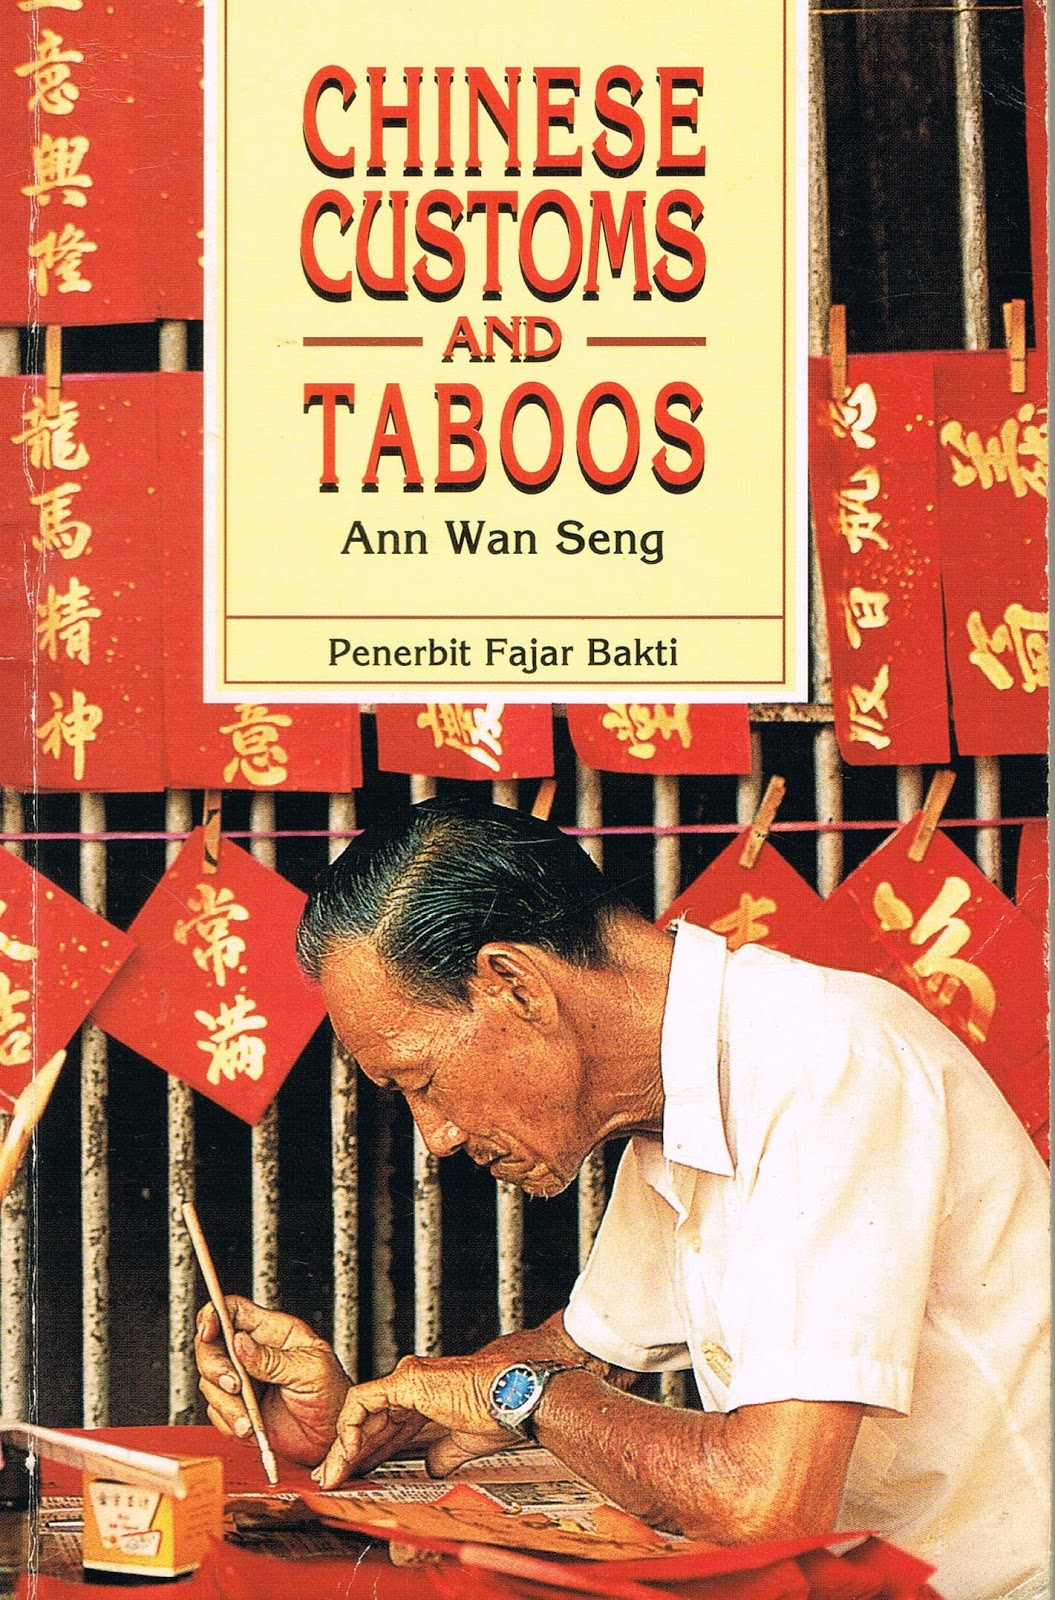 taboos and rituals Amulets, charms, spells and taboos amulets  spells, incantations, lucky numbers, magic rituals, and taboos in an effort to control or influence events.